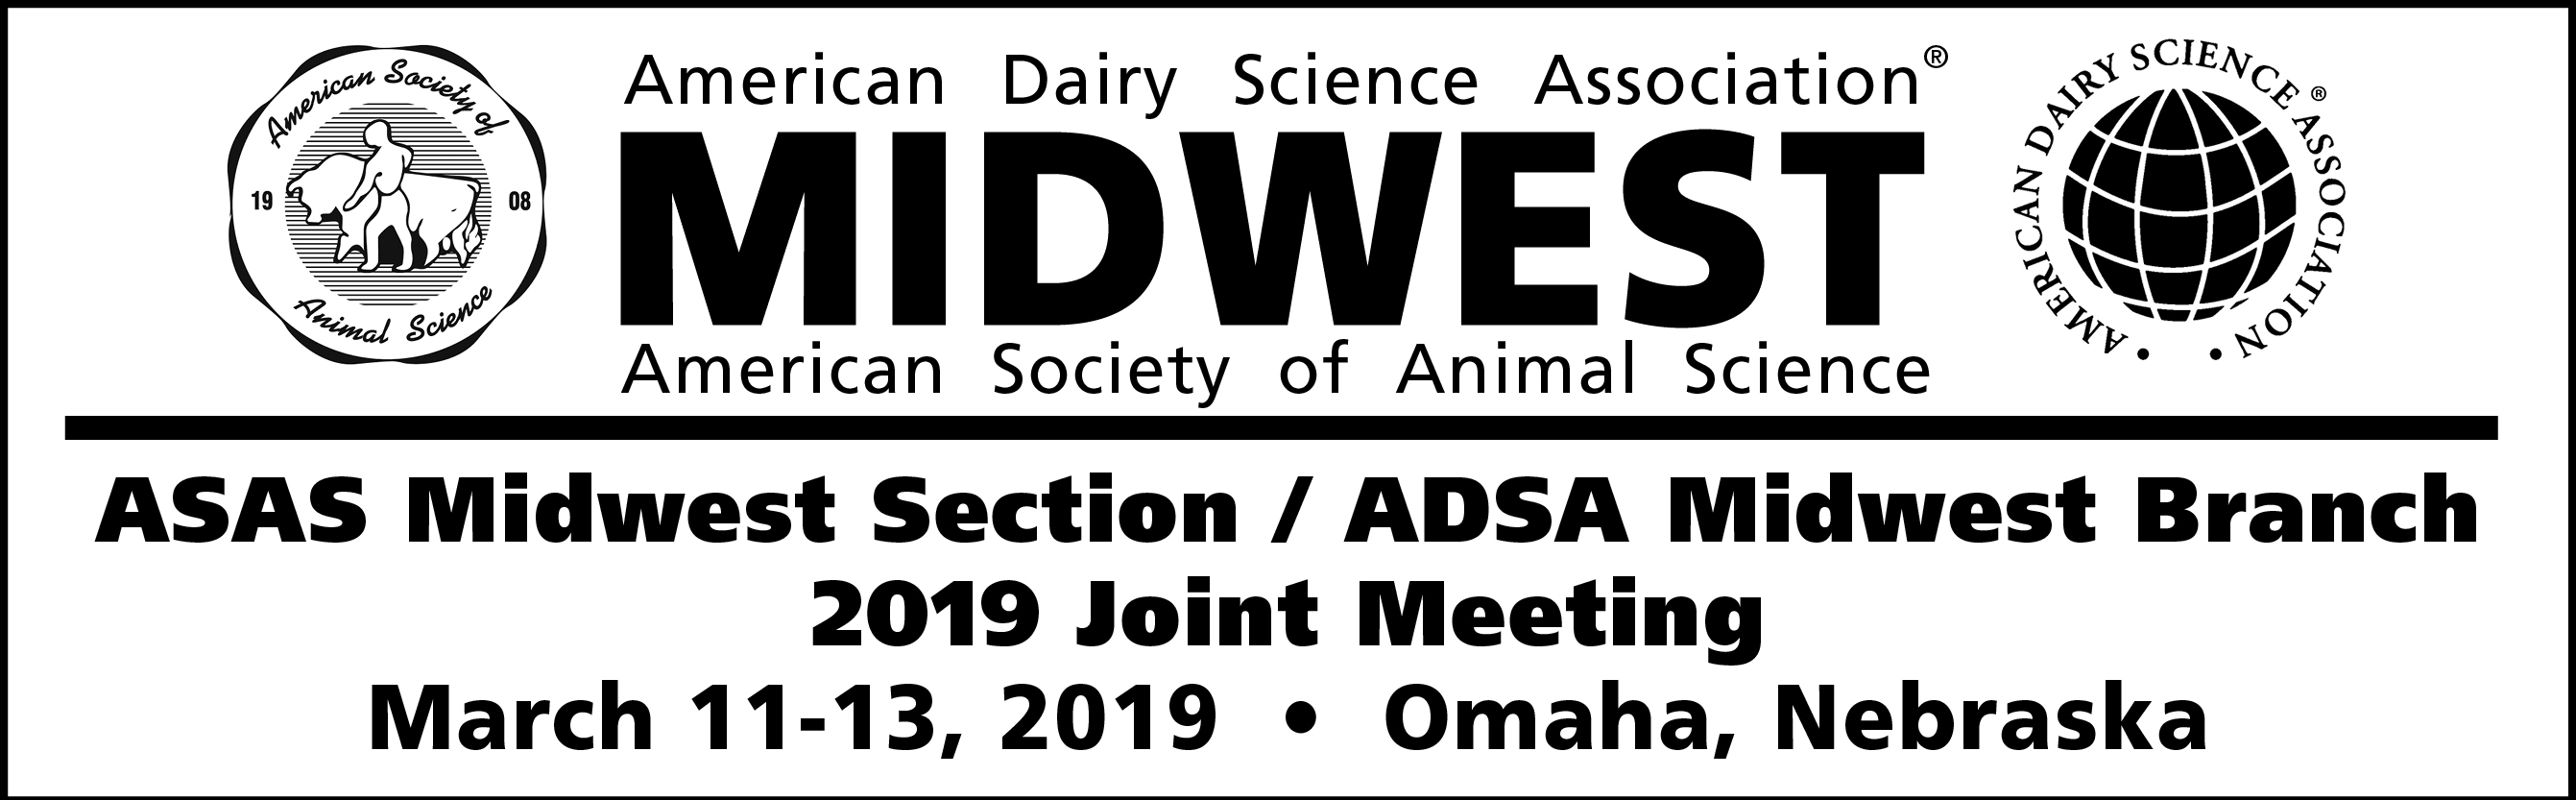 ASAS_ADSA_Midwest19_email